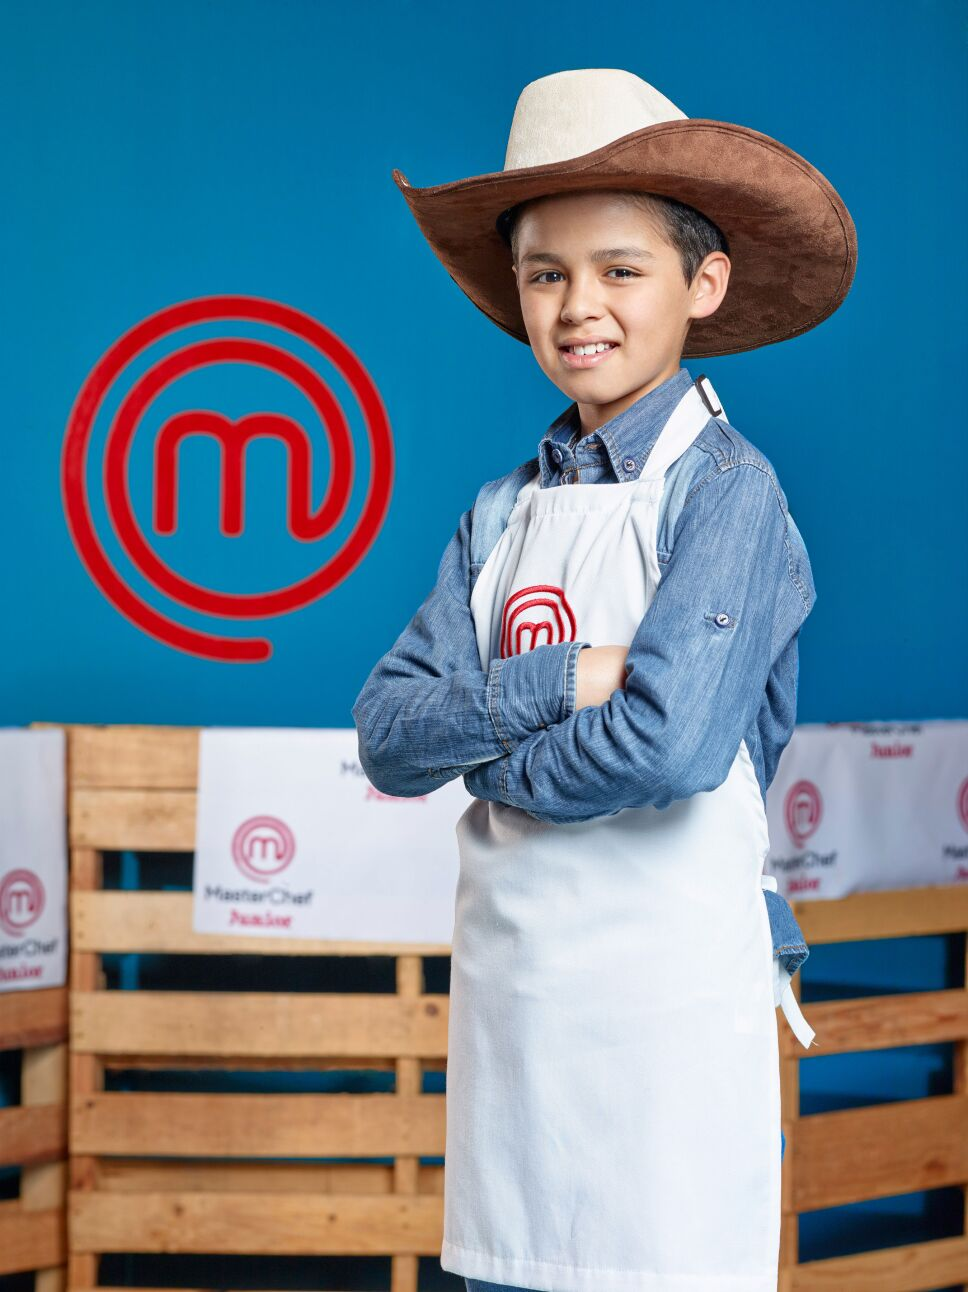 Cristian MasterChef Junior